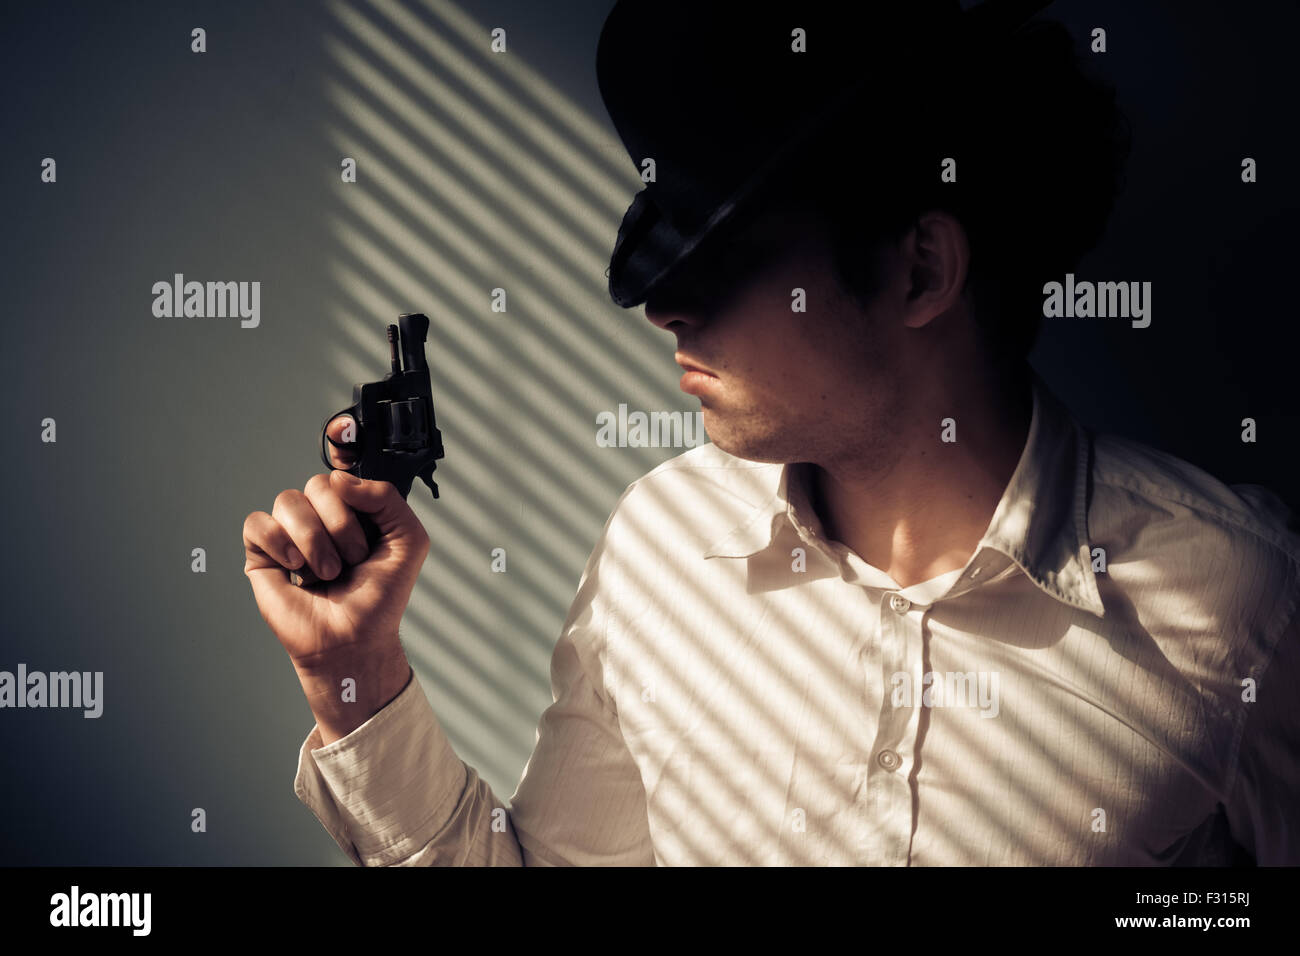 Young man with gun by the window is covered in shadows from the blinds - Stock Image